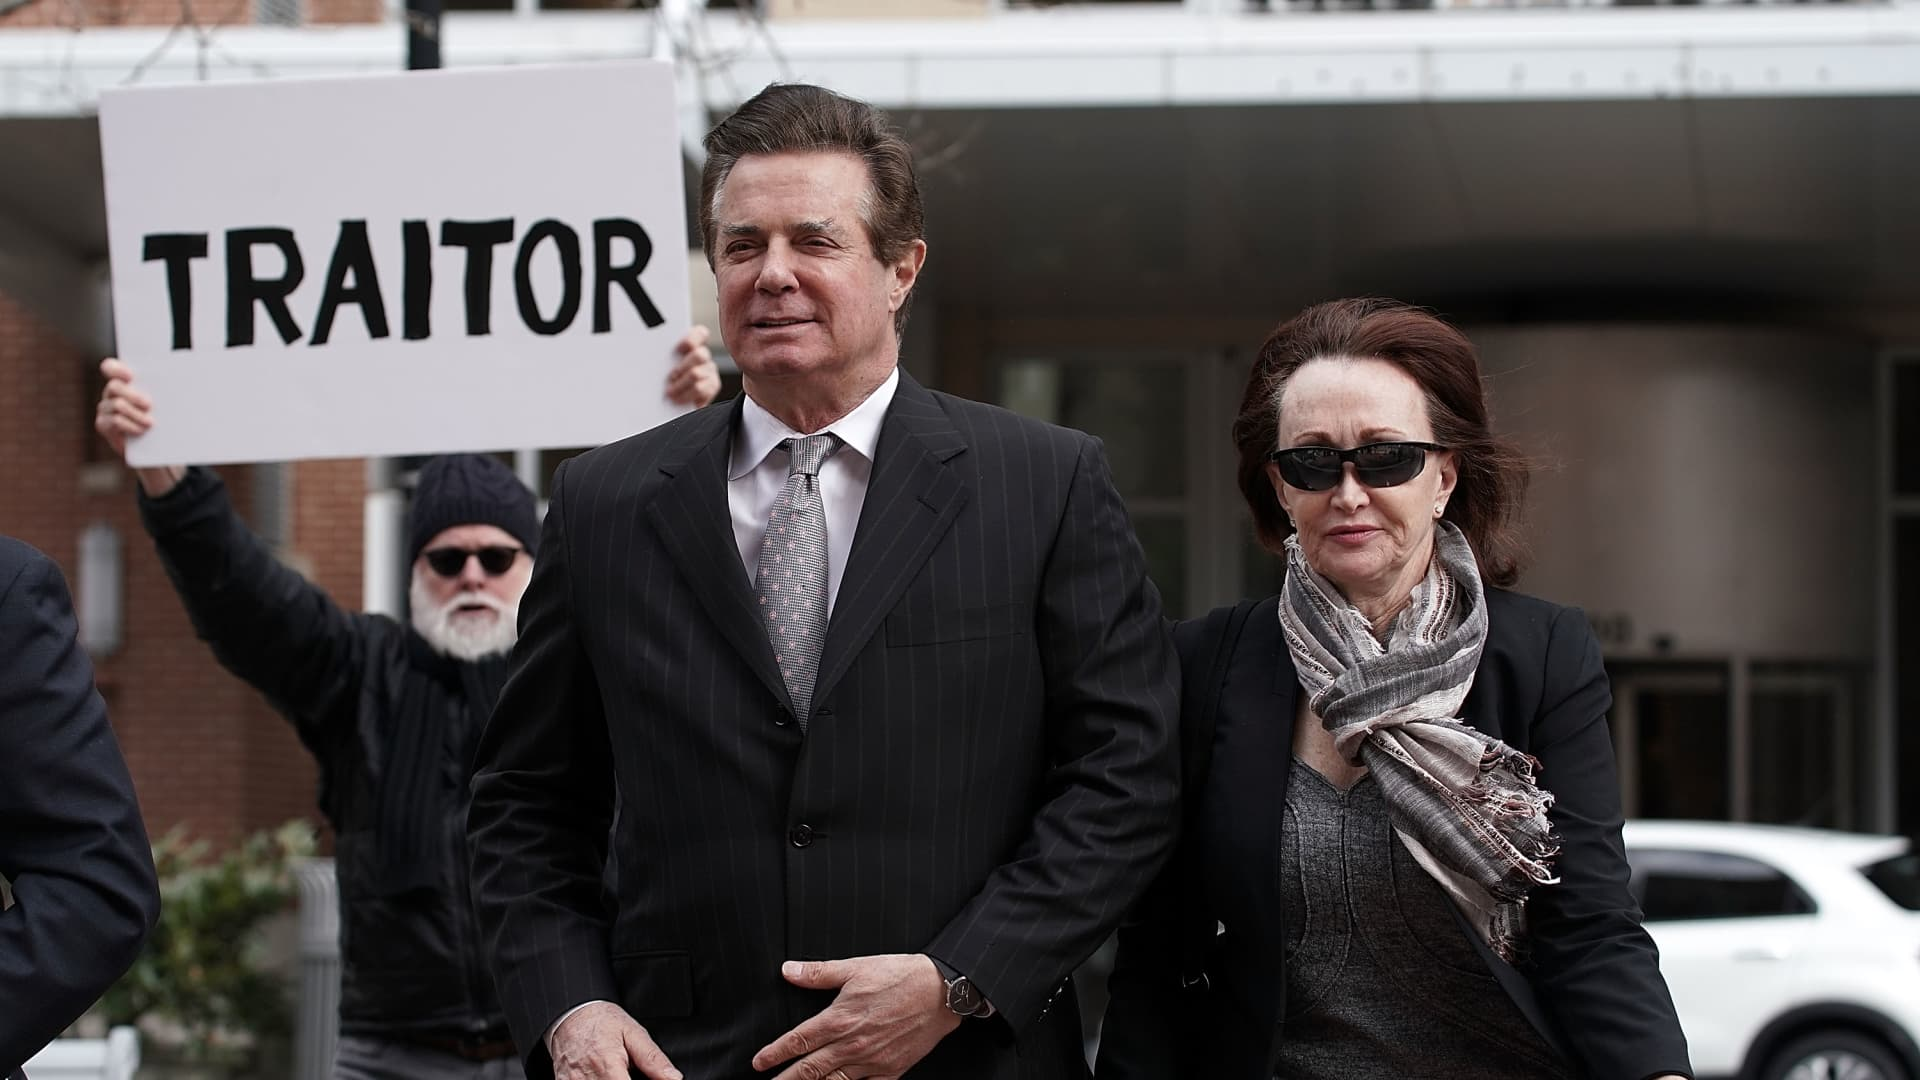 Former Trump campaign manager Paul Manafort (2nd R) arrives with his wife Kathleen Manafort (R) at the Albert V. Bryan U.S. Courthouse for an arraignment hearing as a protester holds up a sign March 8, 2018 in Alexandria, Virginia.